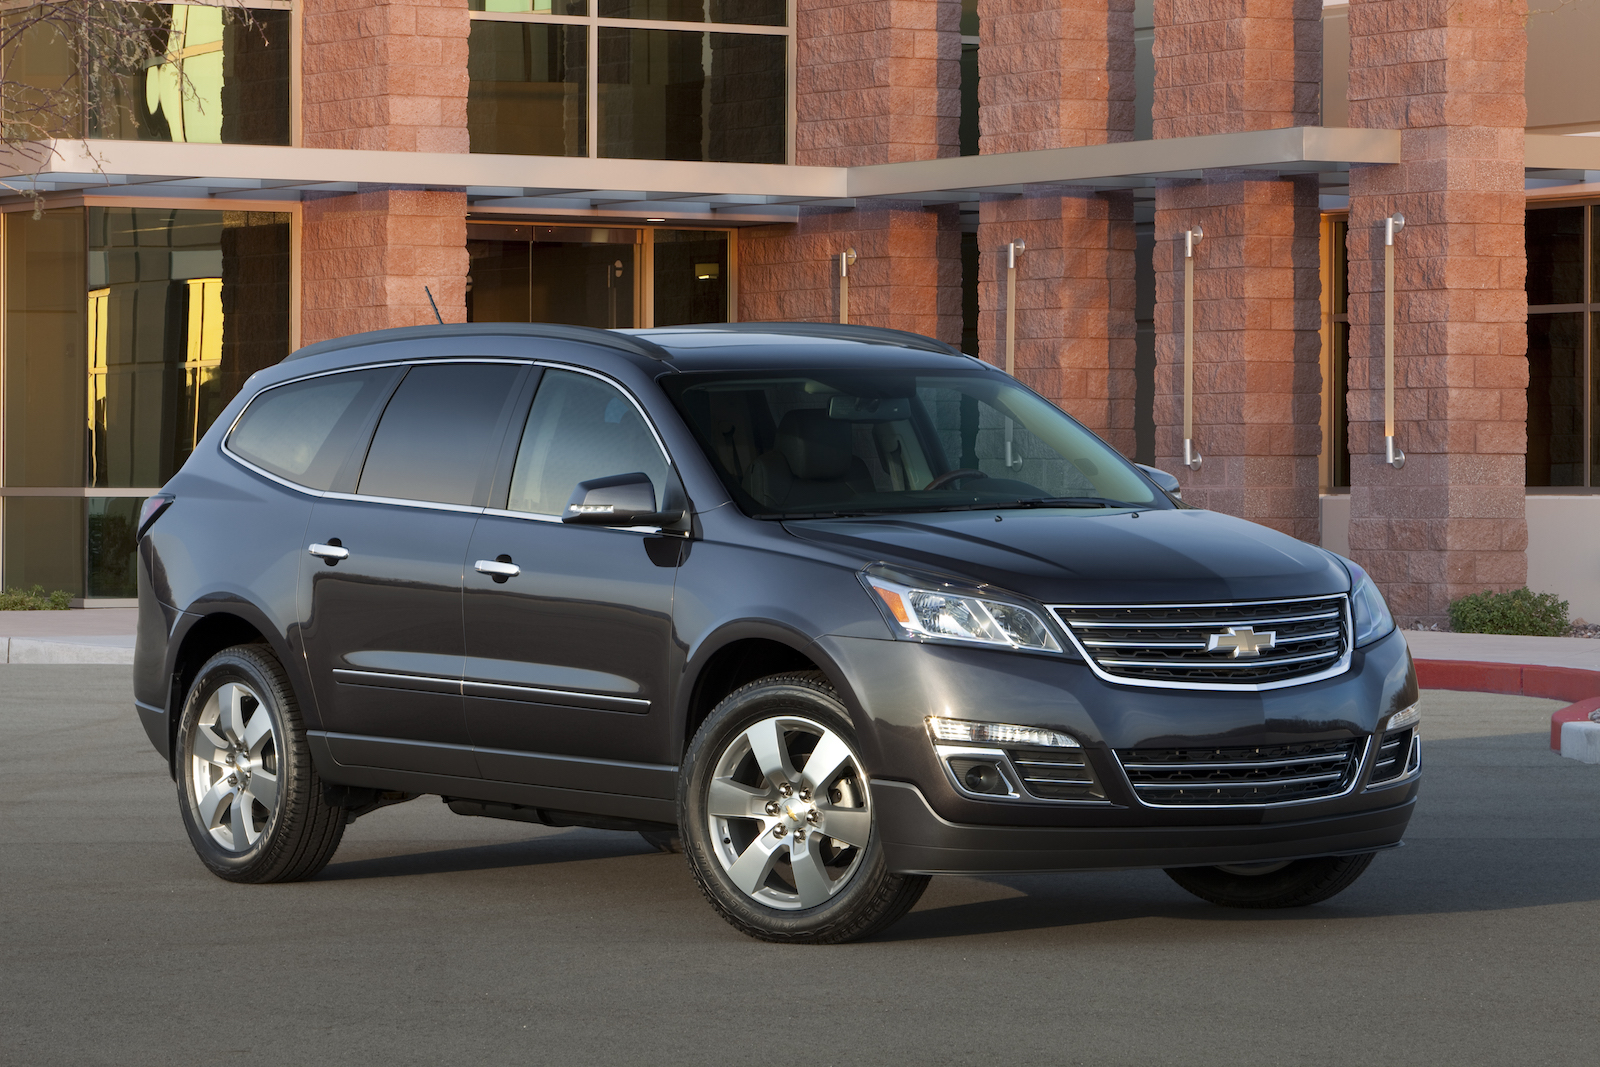 hight resolution of 2013 chevrolet traverse crossover